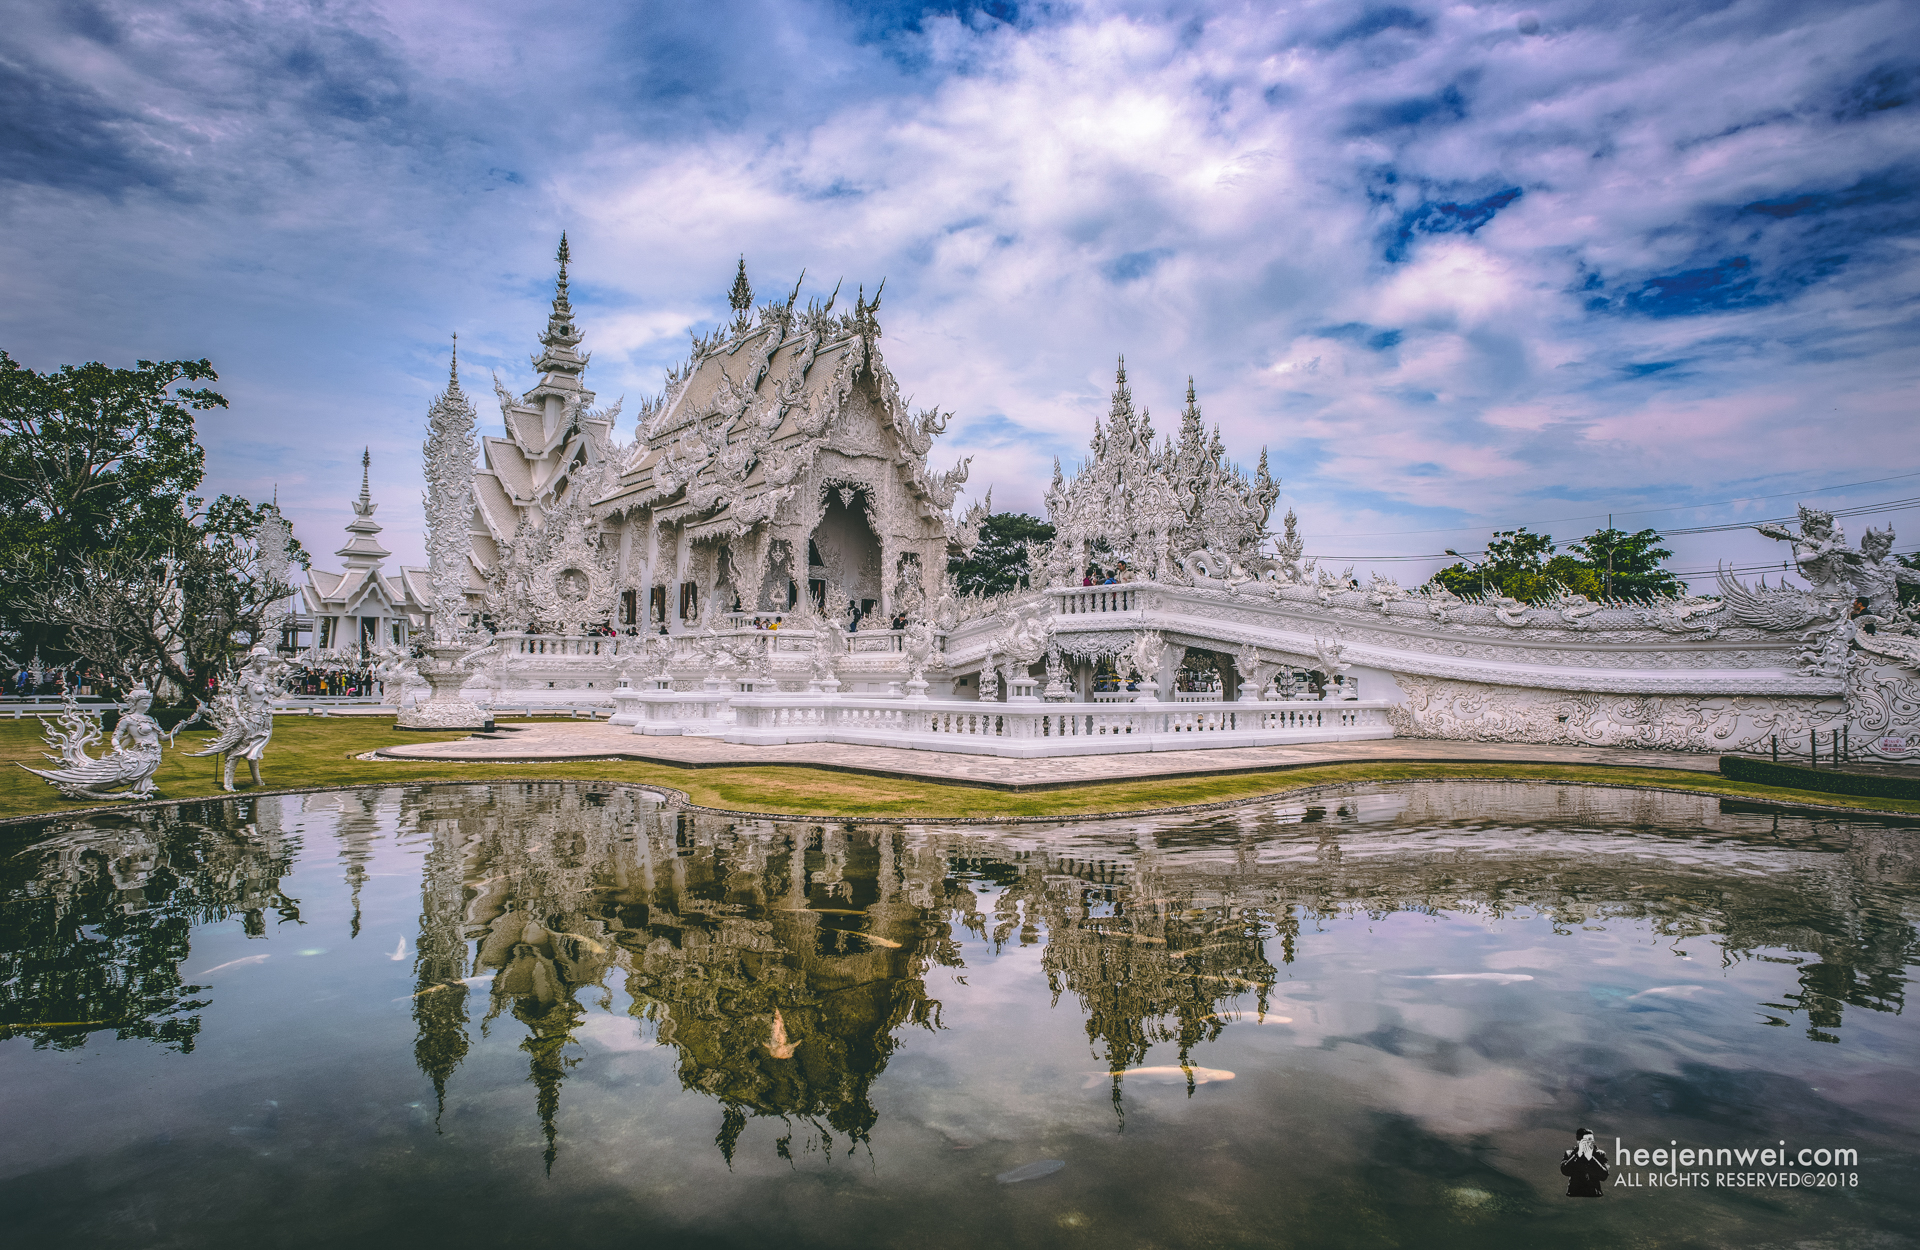 Begin our exploration of Chiang Rai in one of Thailand's most precious gems - Wat Rong Khun.